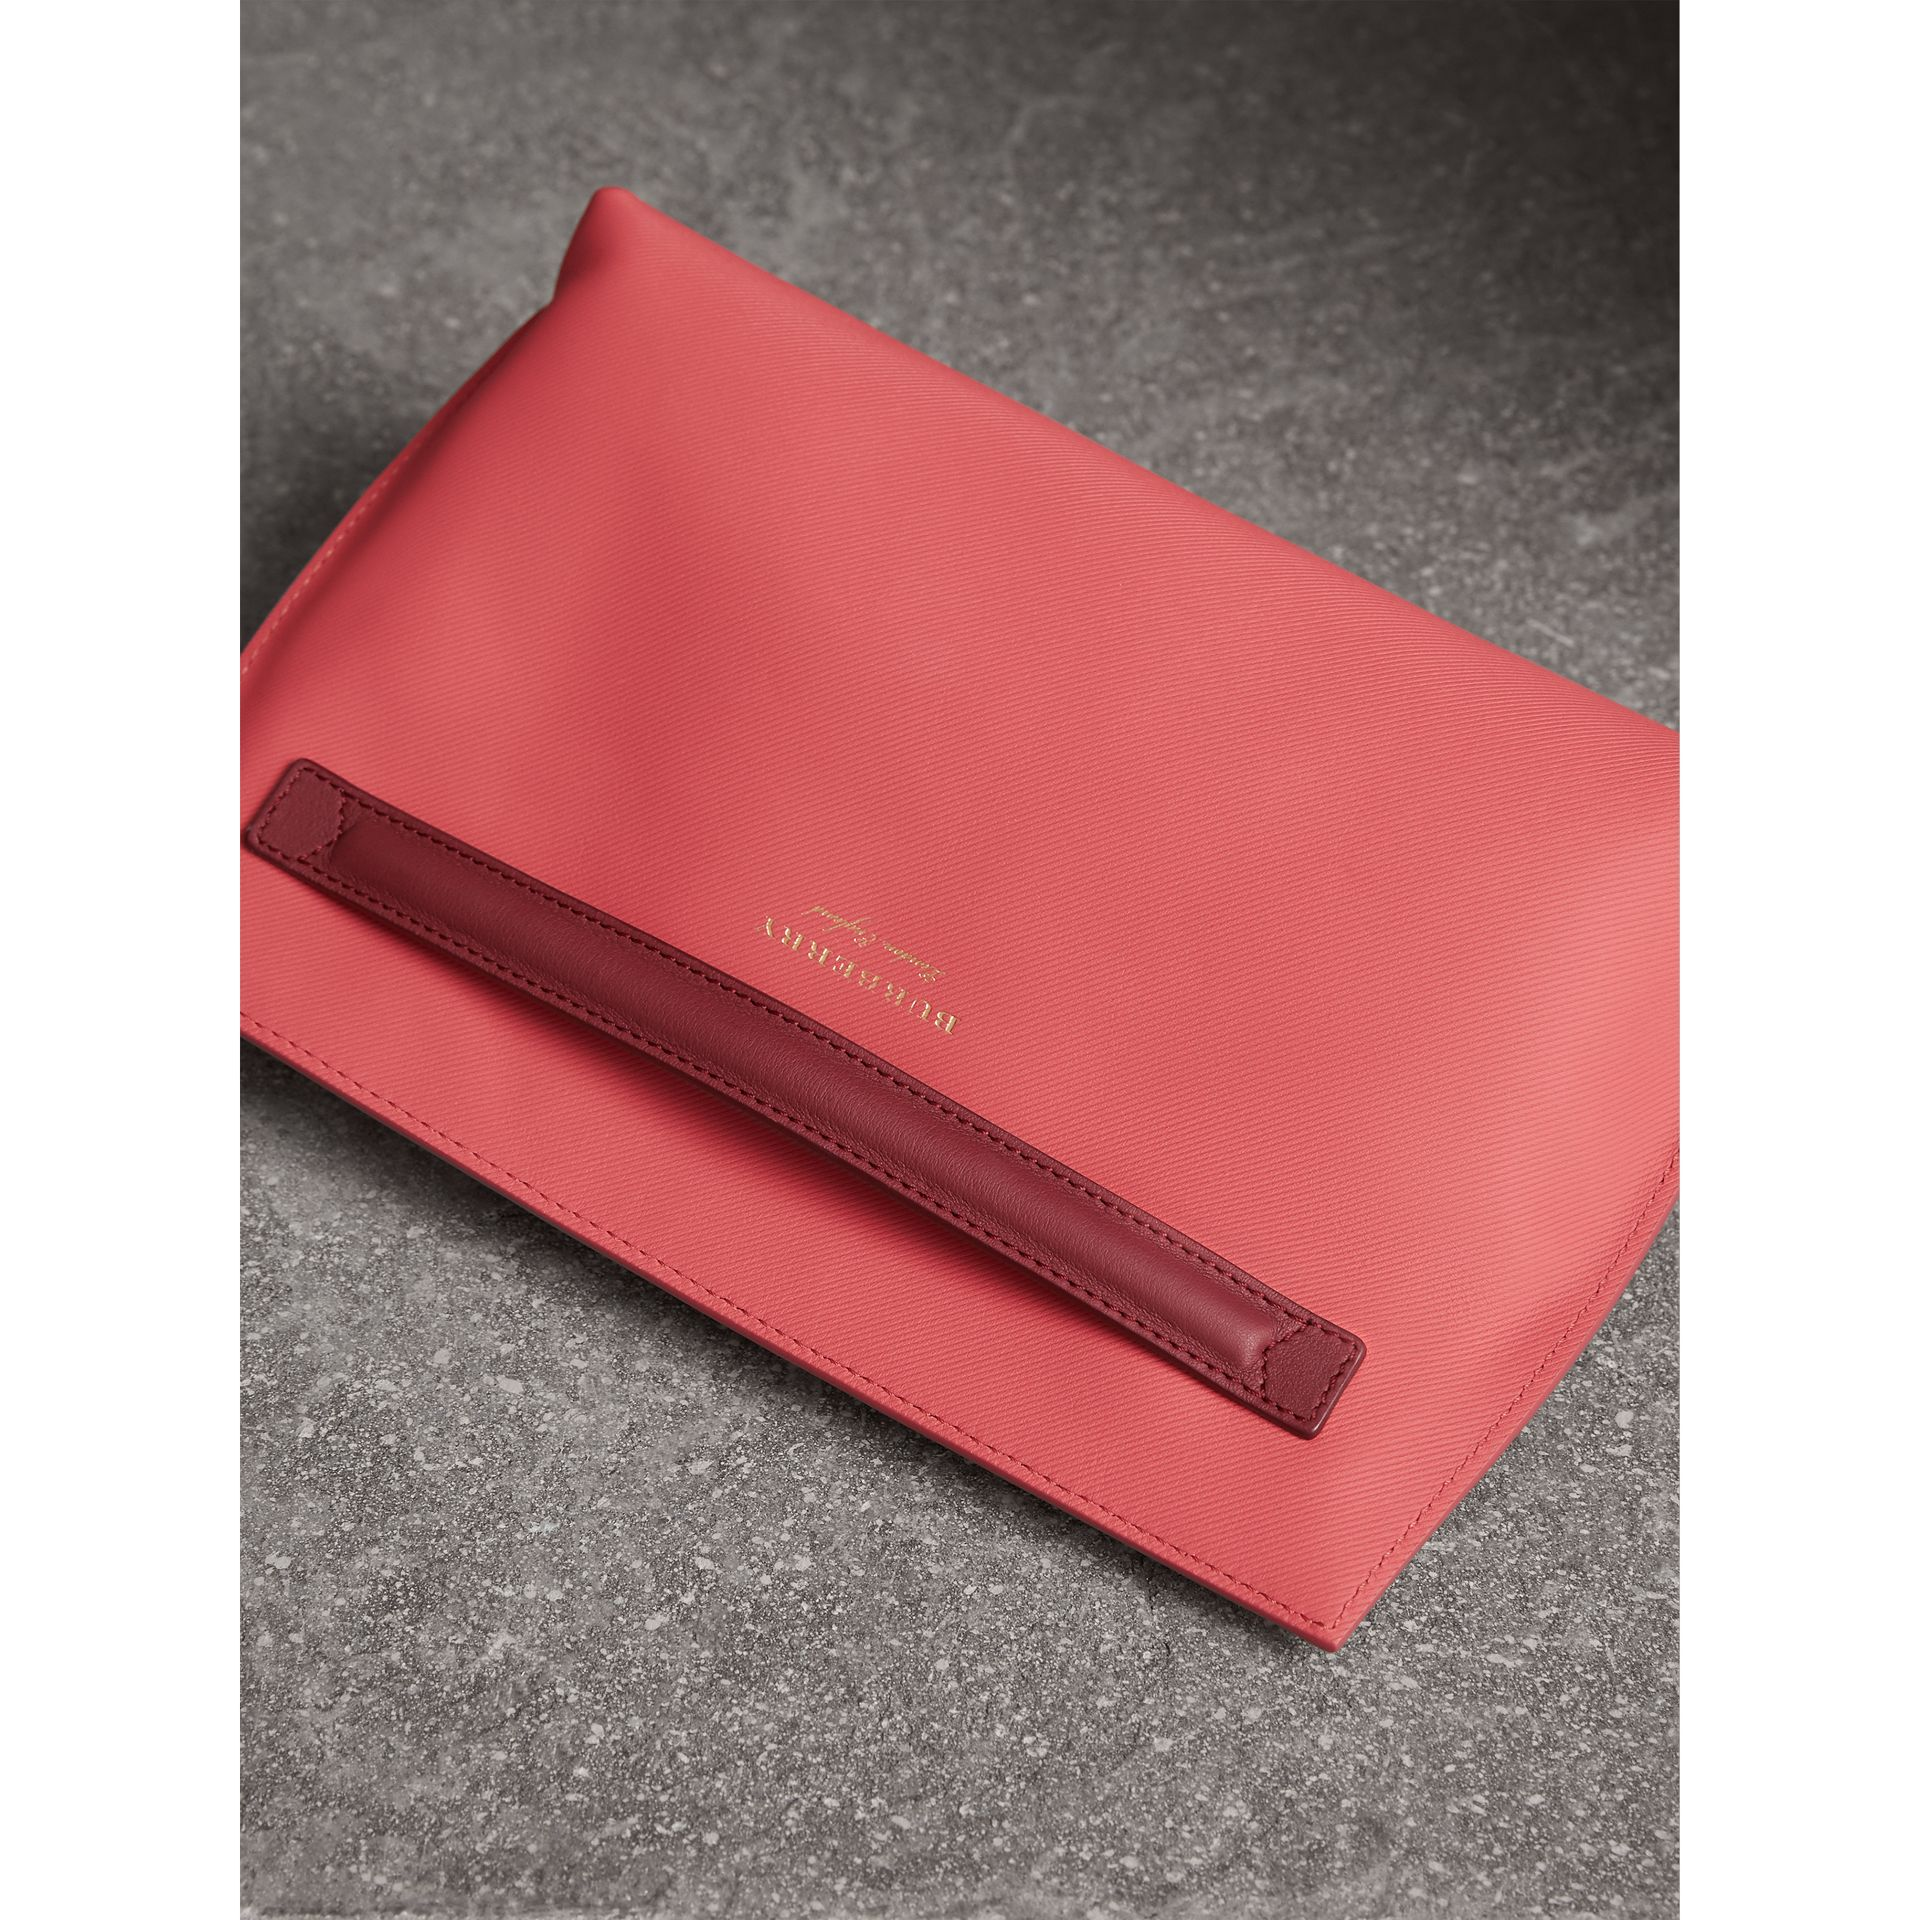 Two-tone Trench Leather Wristlet Pouch in Blossom Pink/antique Red - Women | Burberry United States - gallery image 4